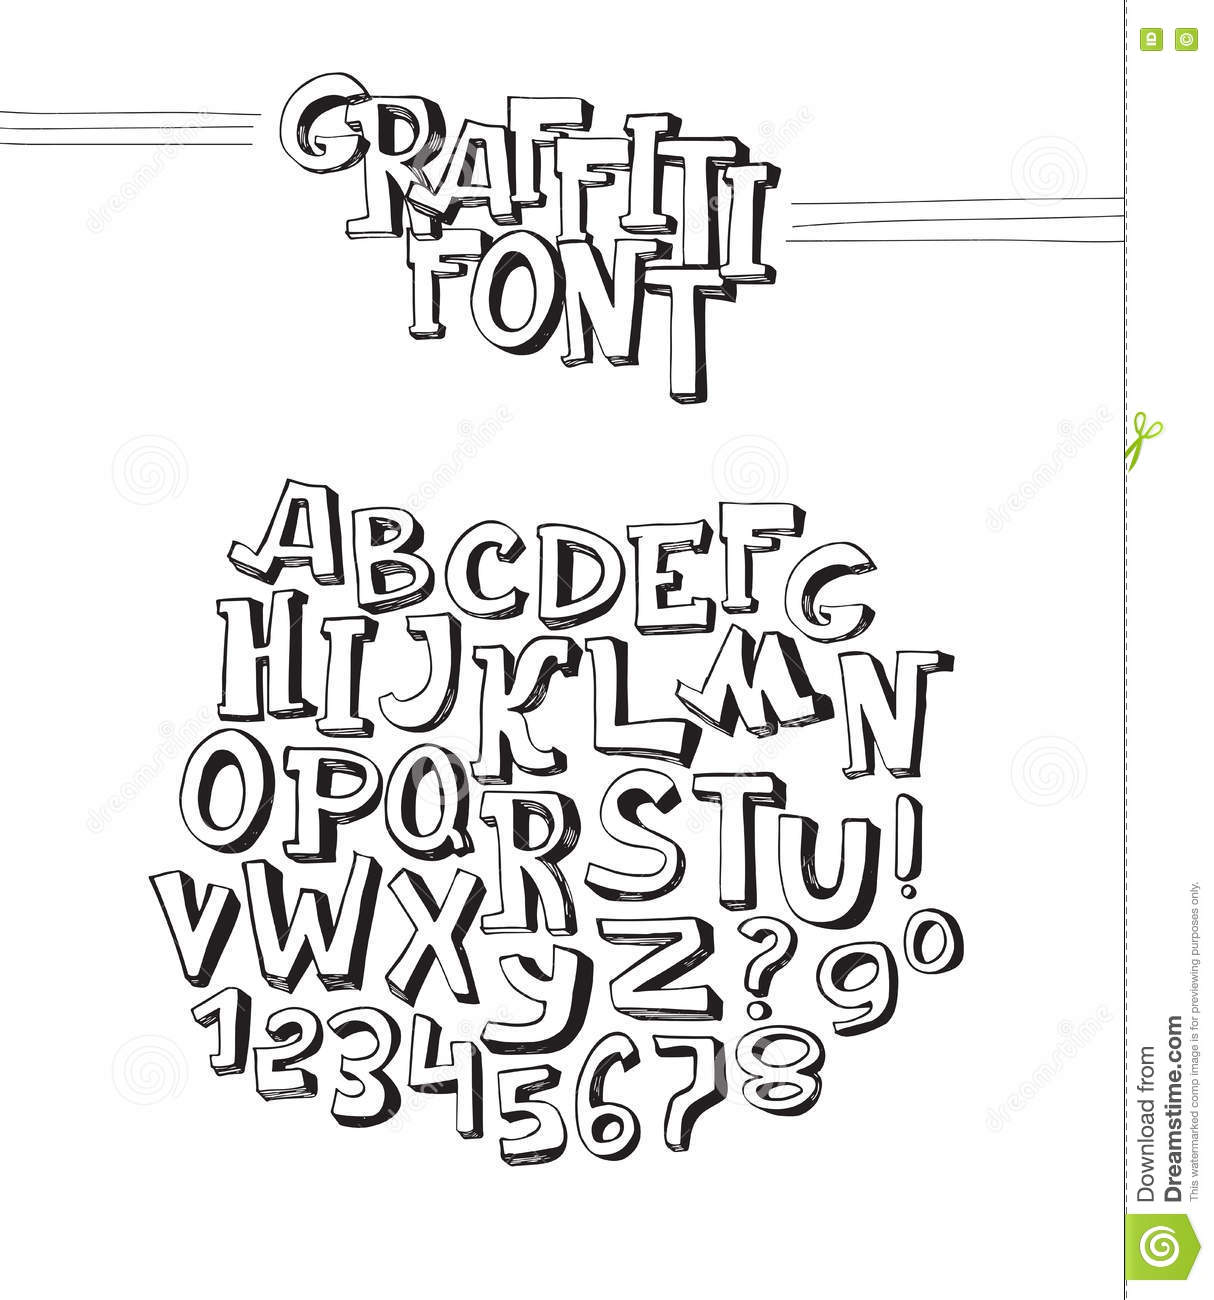 Graffiti font abc letters from a to z and numbers from 0 to 9